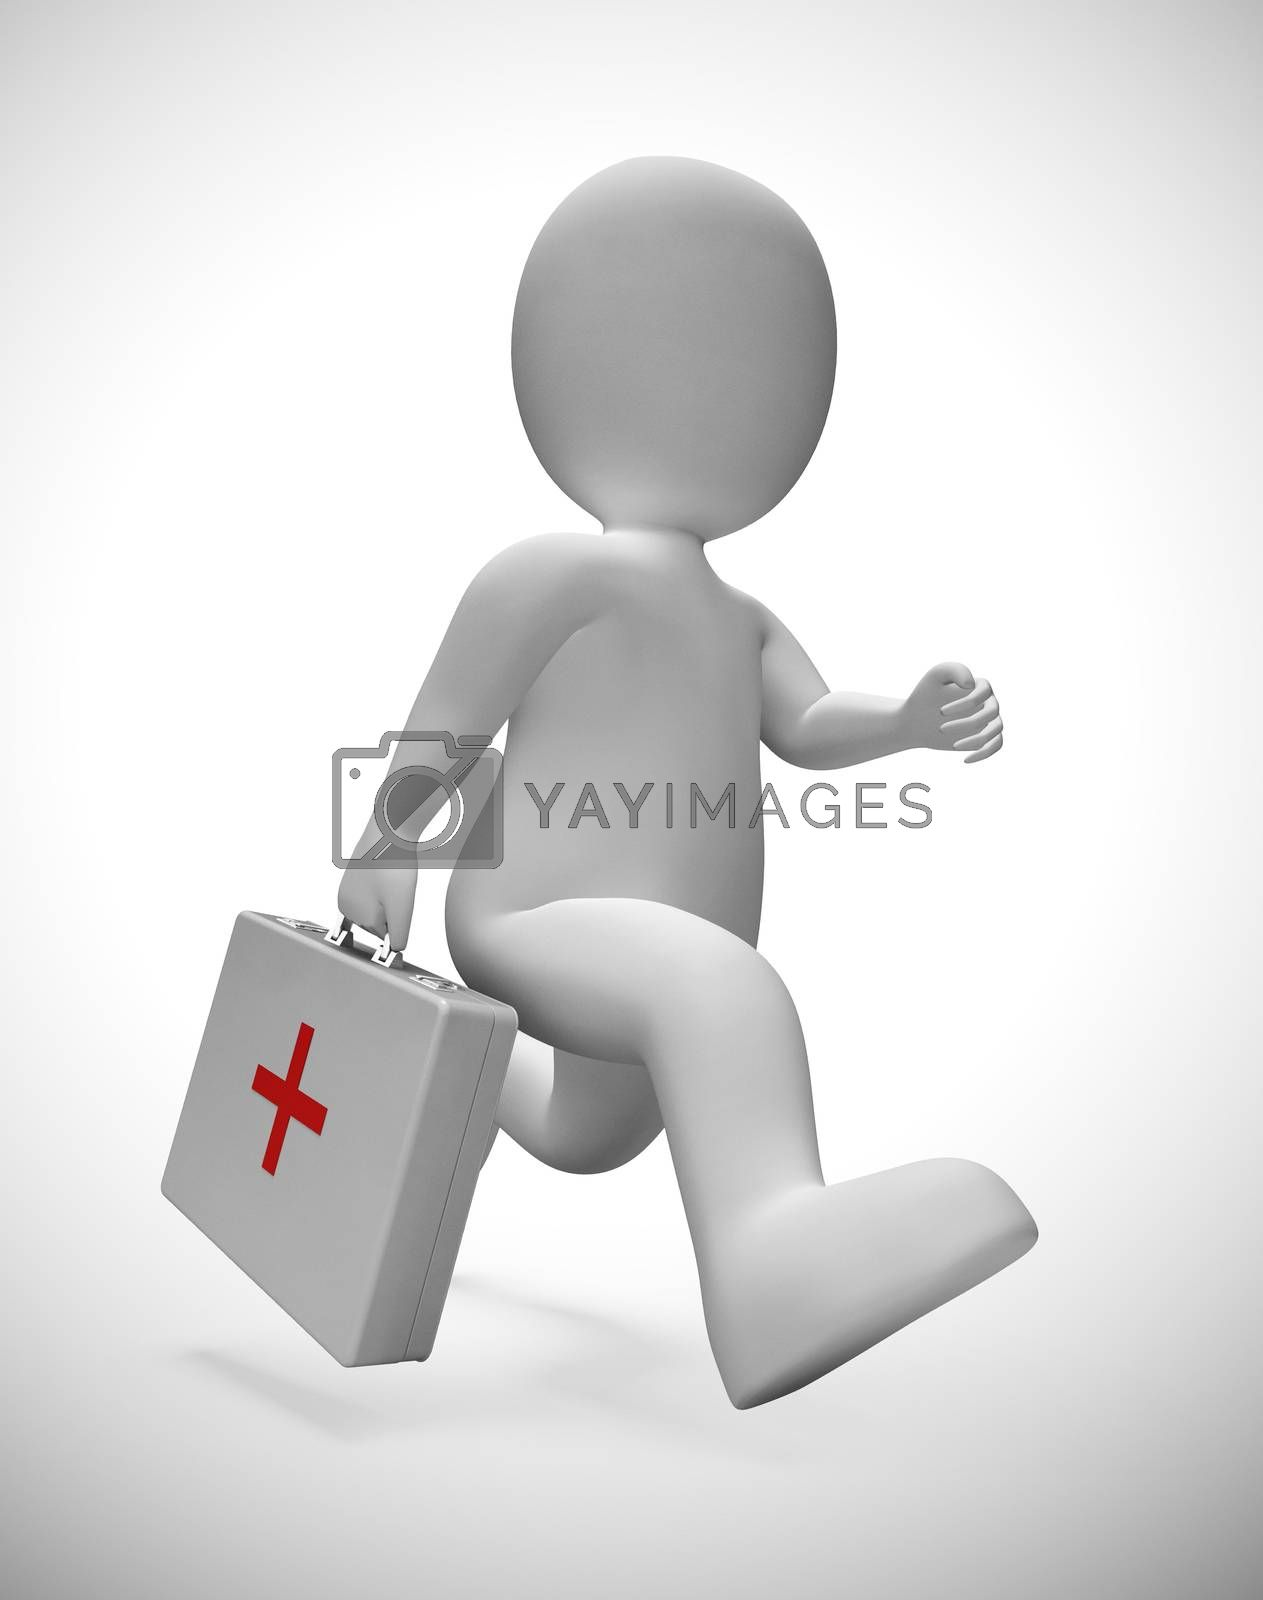 First aid kit for emergencies and medical assistance or treatment. Urgent care as a first responder - 3d illustration